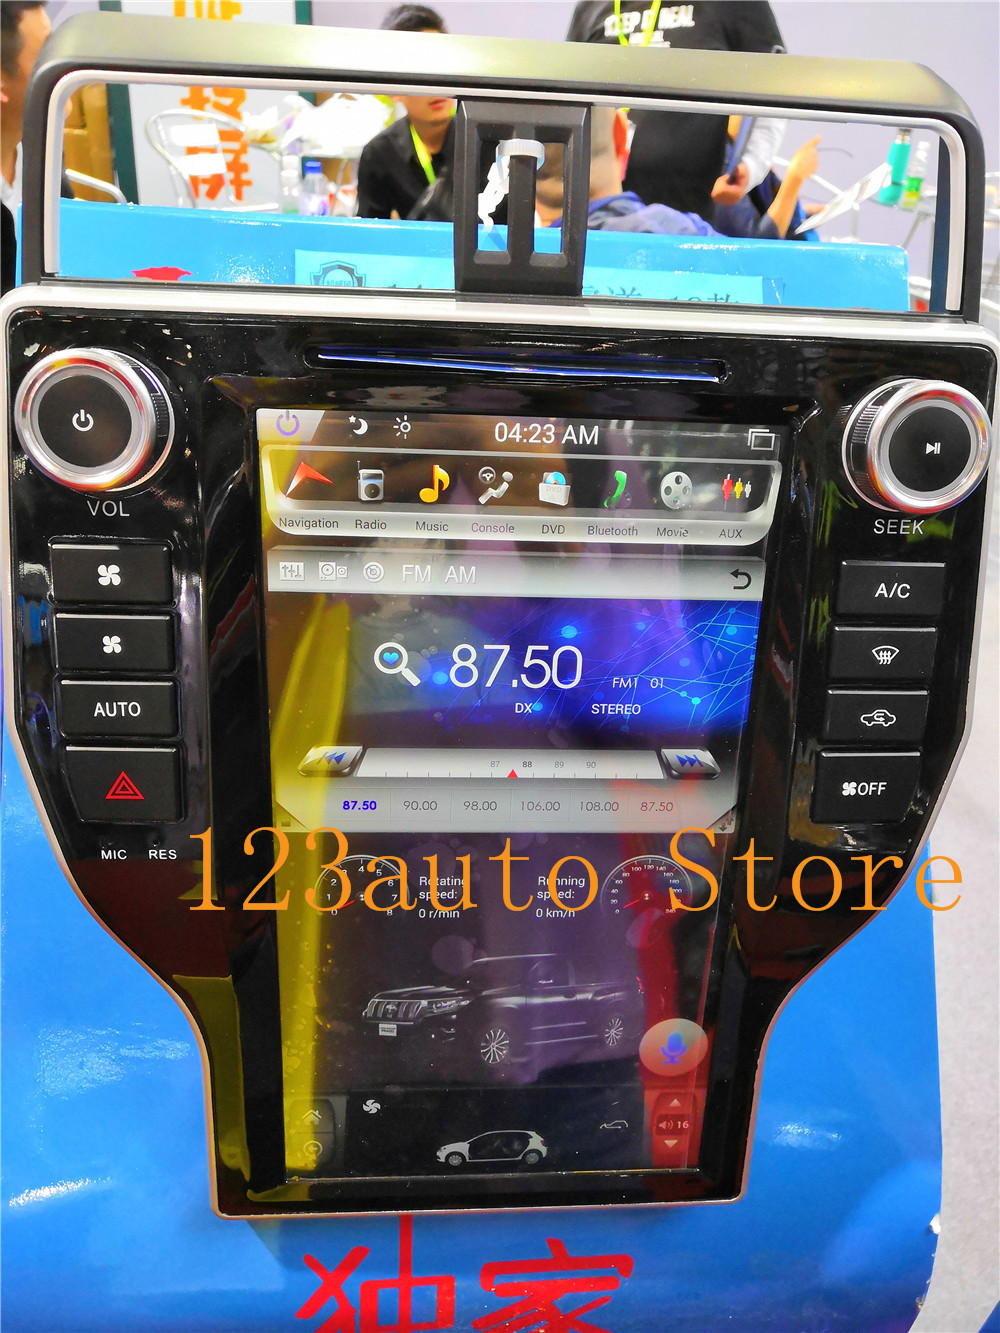 Autocardvdgps us $527.2 20% off|14 inch vertical tesla style android 7.1 auto car dvd gps  navigation for toyota land cruiser prado 150 2018 dvd player radio-in